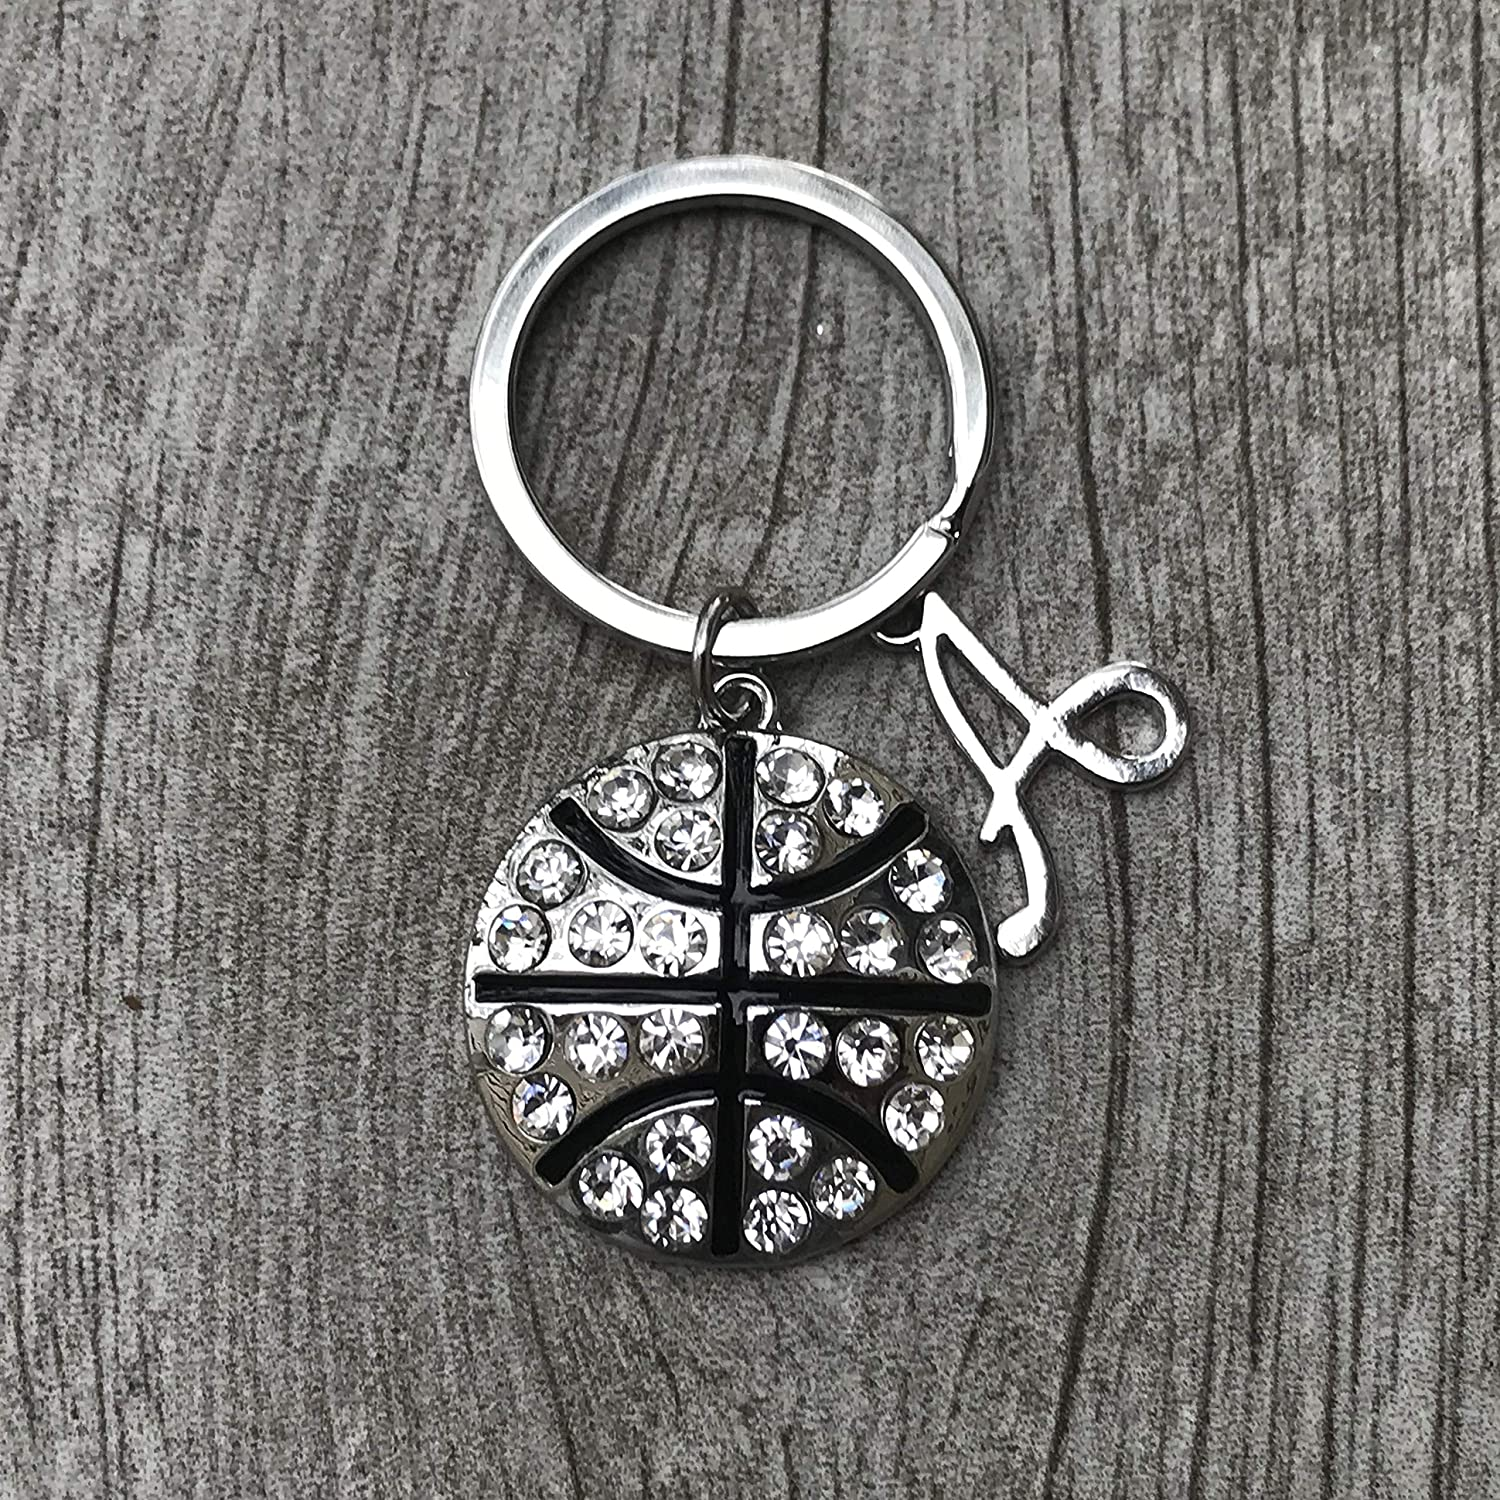 Personalized Basketball Keychain with Letter Charm- Basketball Gift- Custom  Rhinestone Basketball Jewelry for Women   Girls 7afe913e25